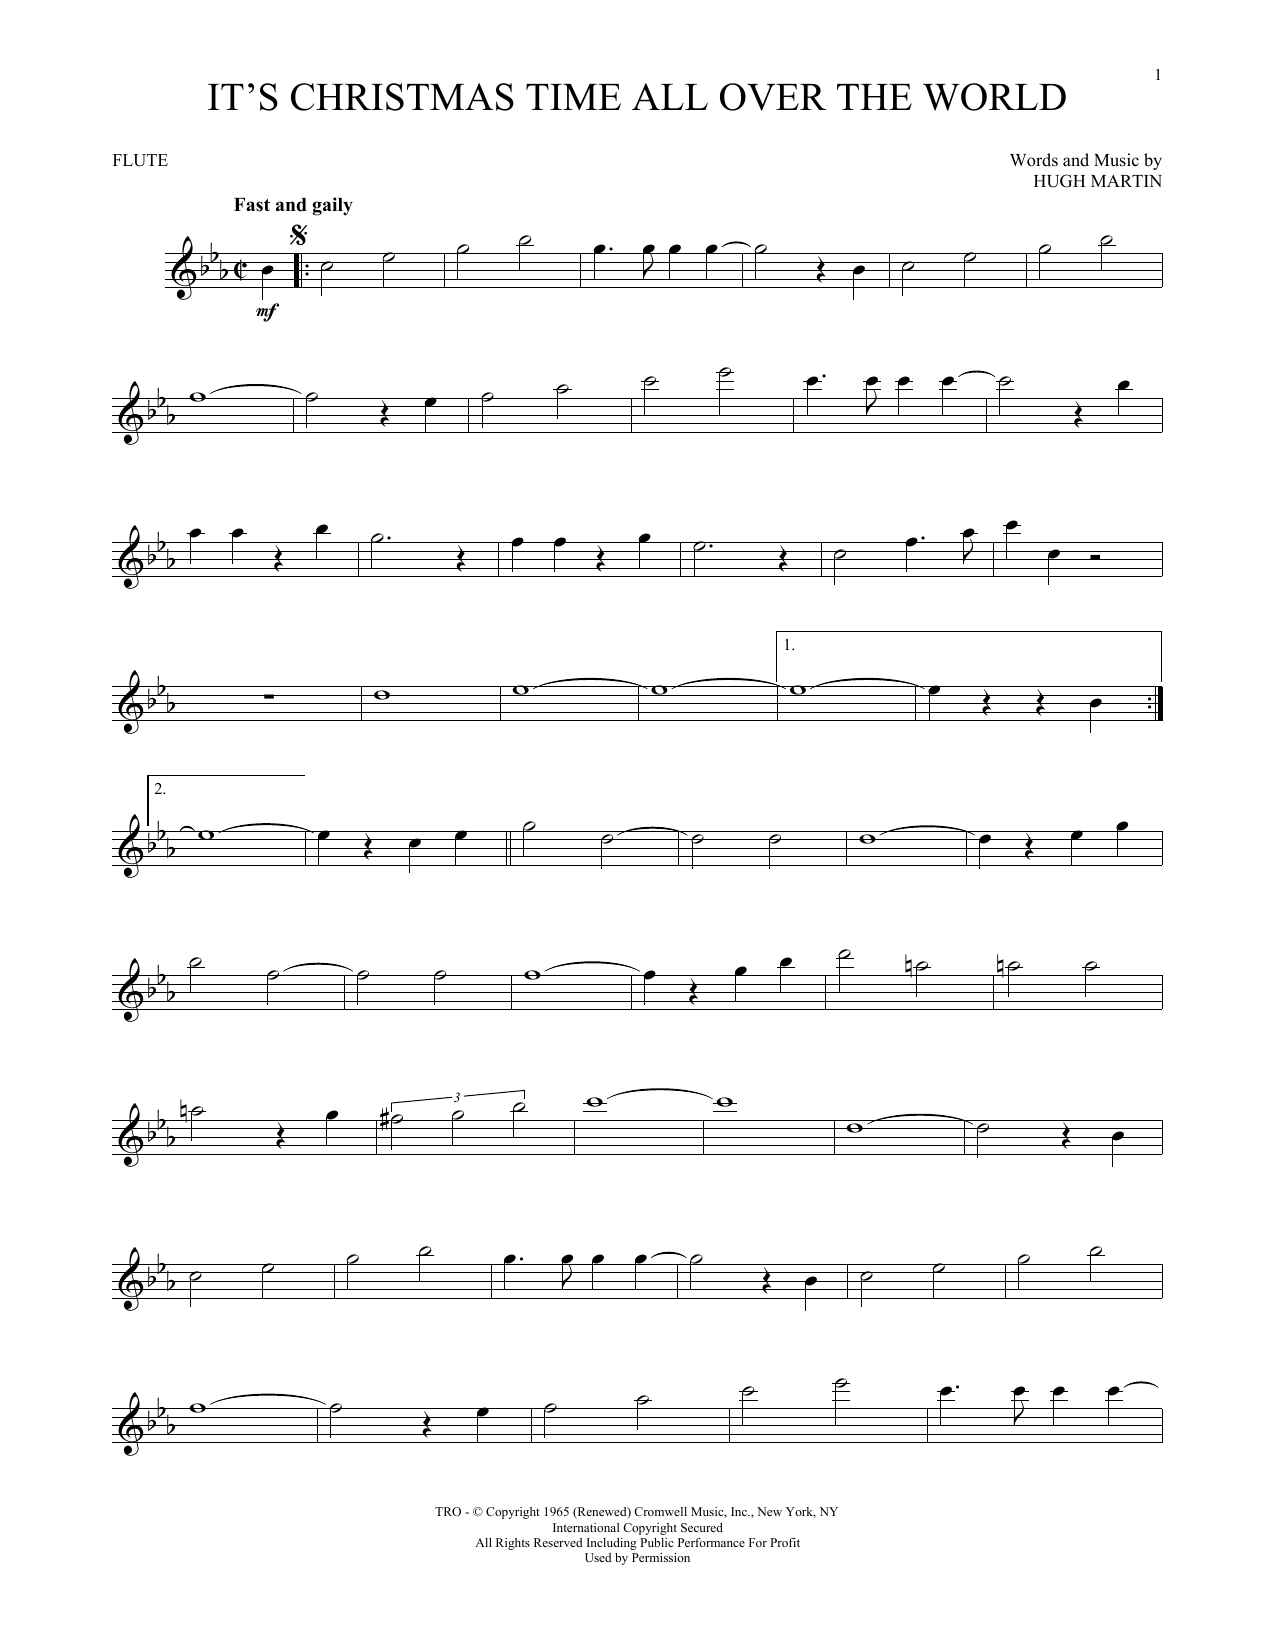 It's Christmas Time All Over The World (Flute Solo)